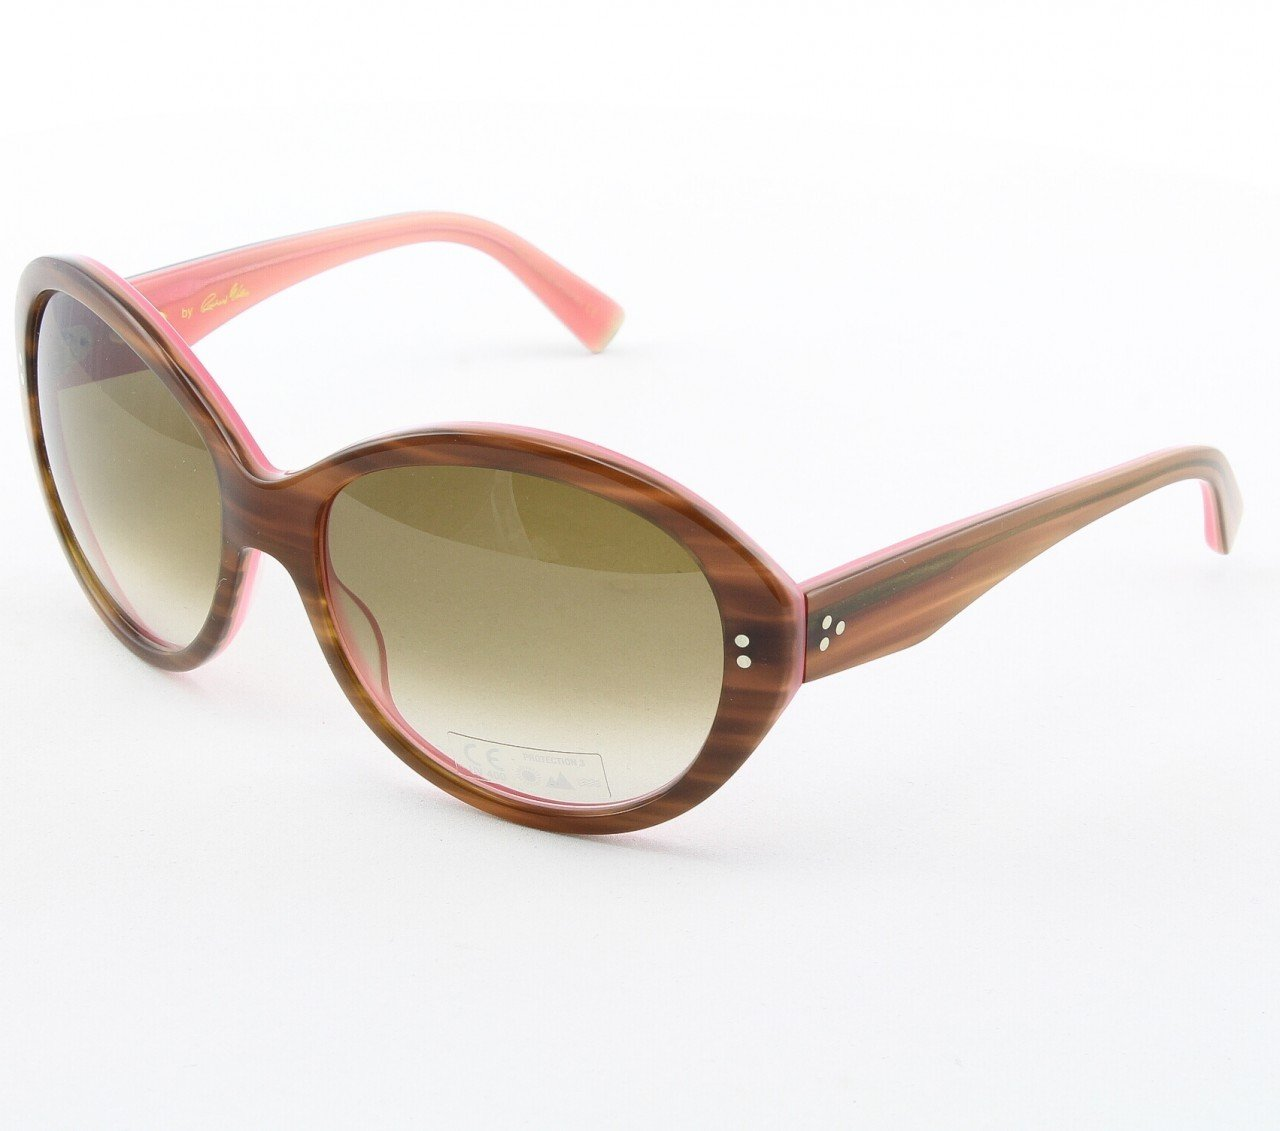 Blinde Lets Go All The Way Women's Sunglasses Col. Tortoise Flamingo with Brown Gradient Lenses